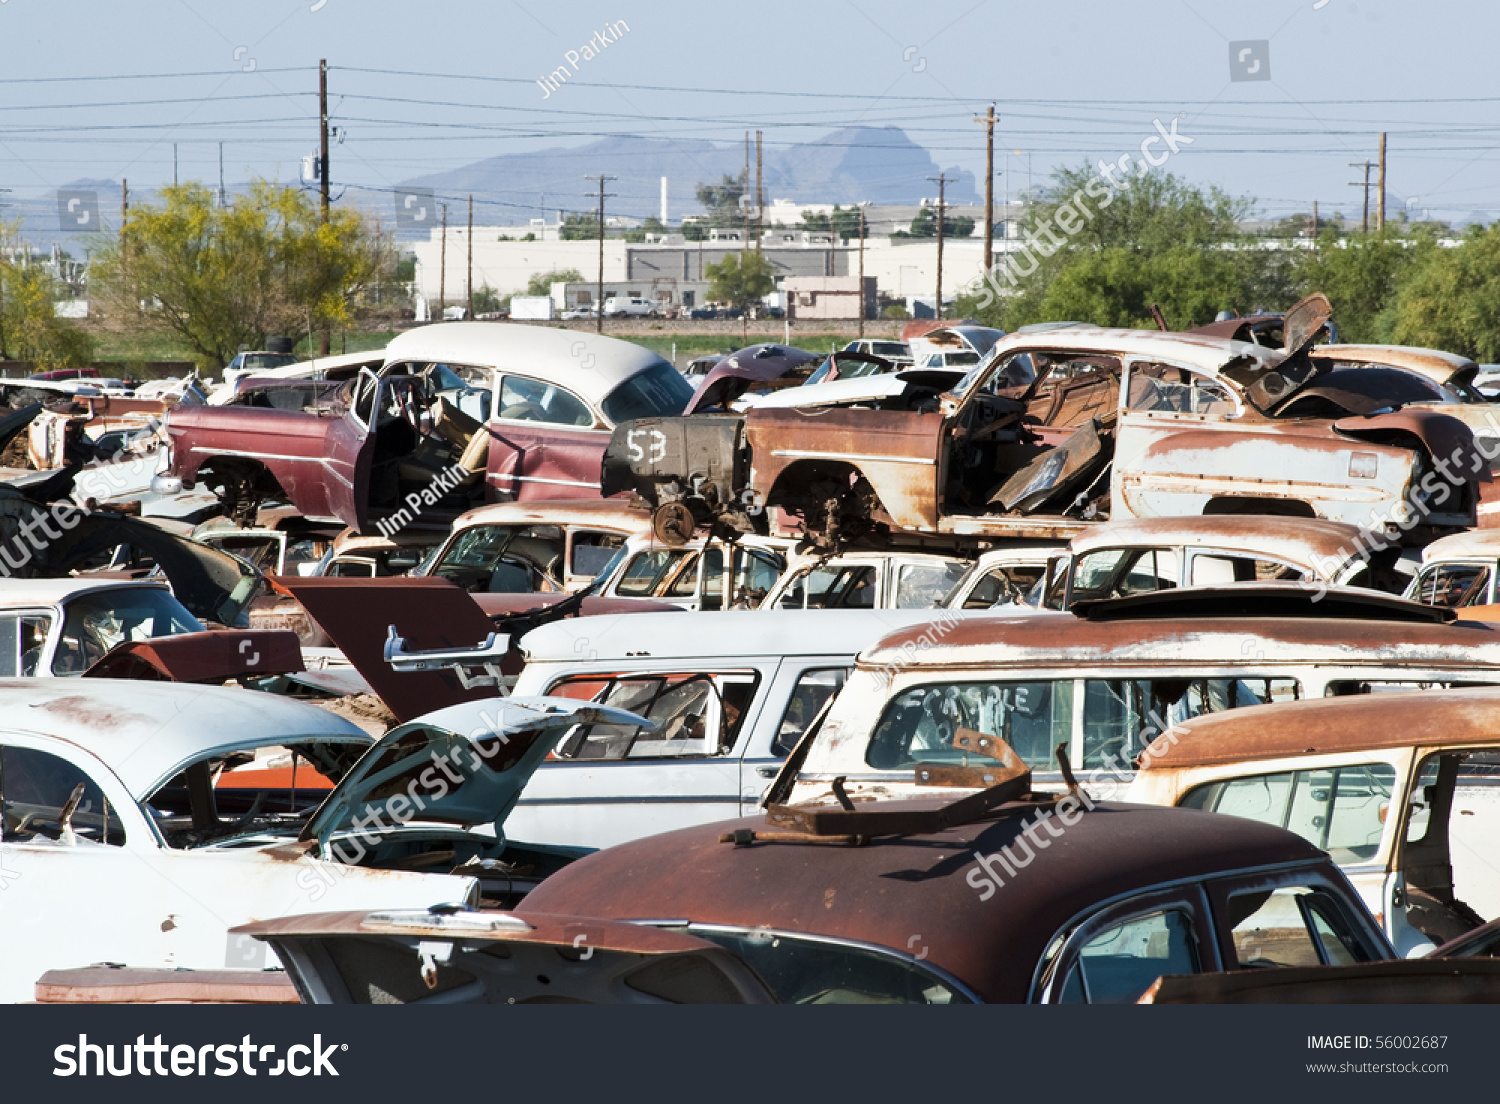 Old Vehicles Auto Salvage Yard Being Stock Photo (Royalty Free ...